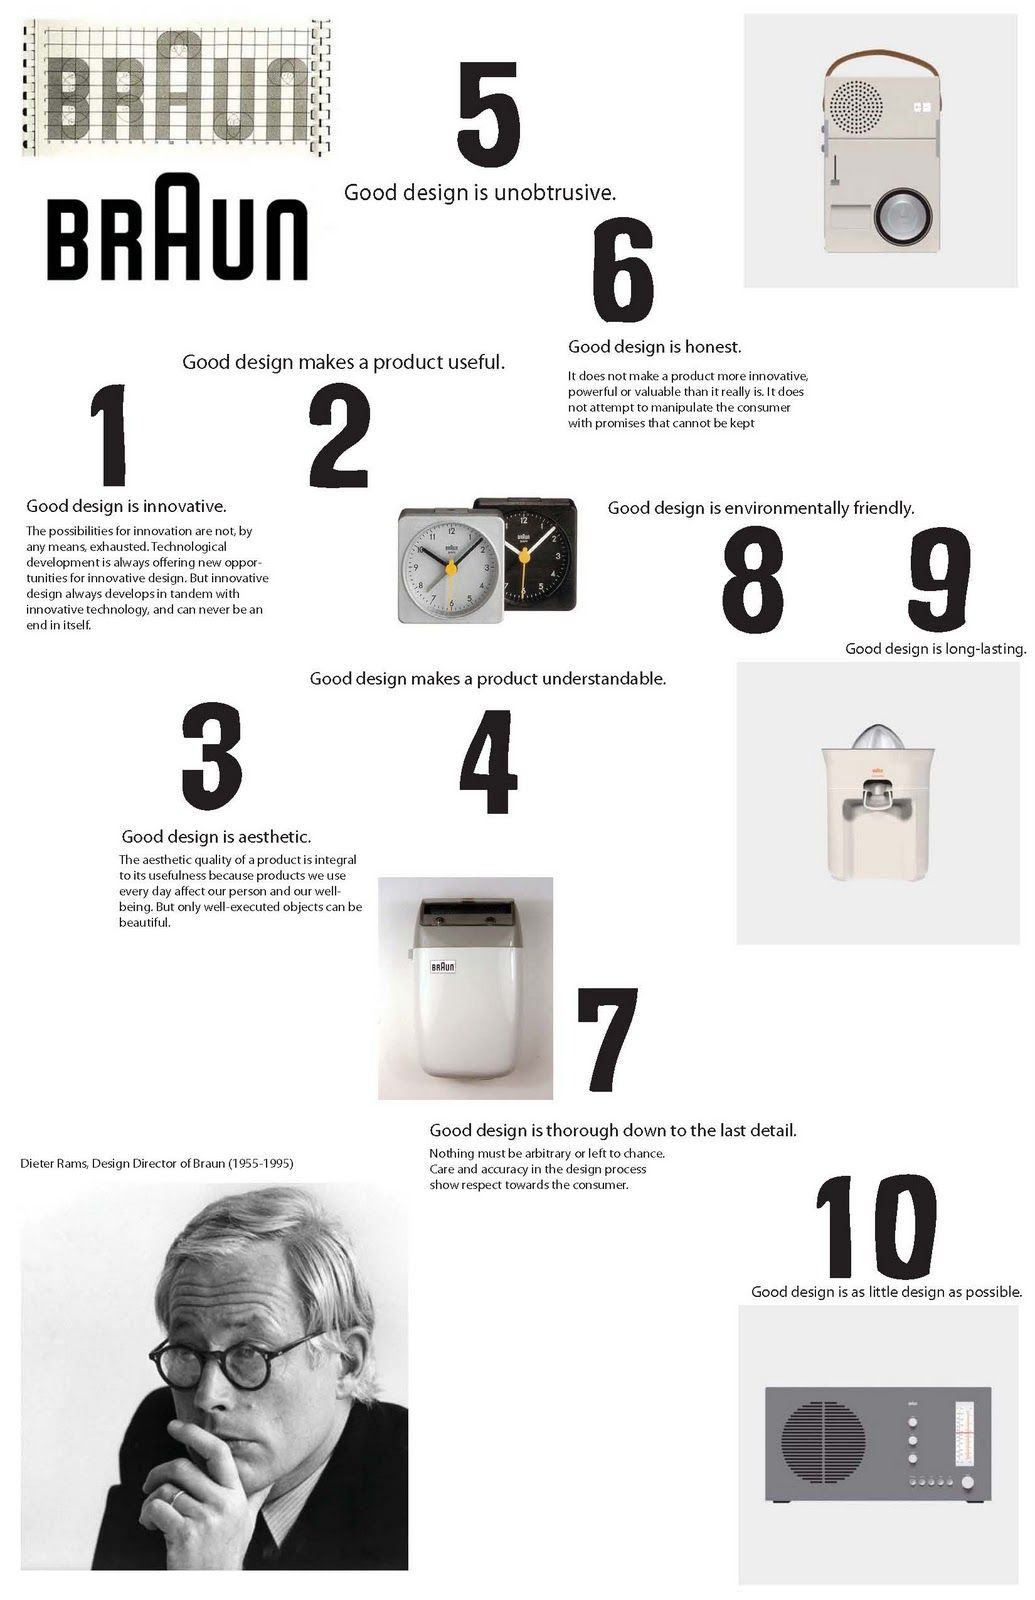 dieter rams ten rules of good design poster braun pic on design you trust less but better. Black Bedroom Furniture Sets. Home Design Ideas